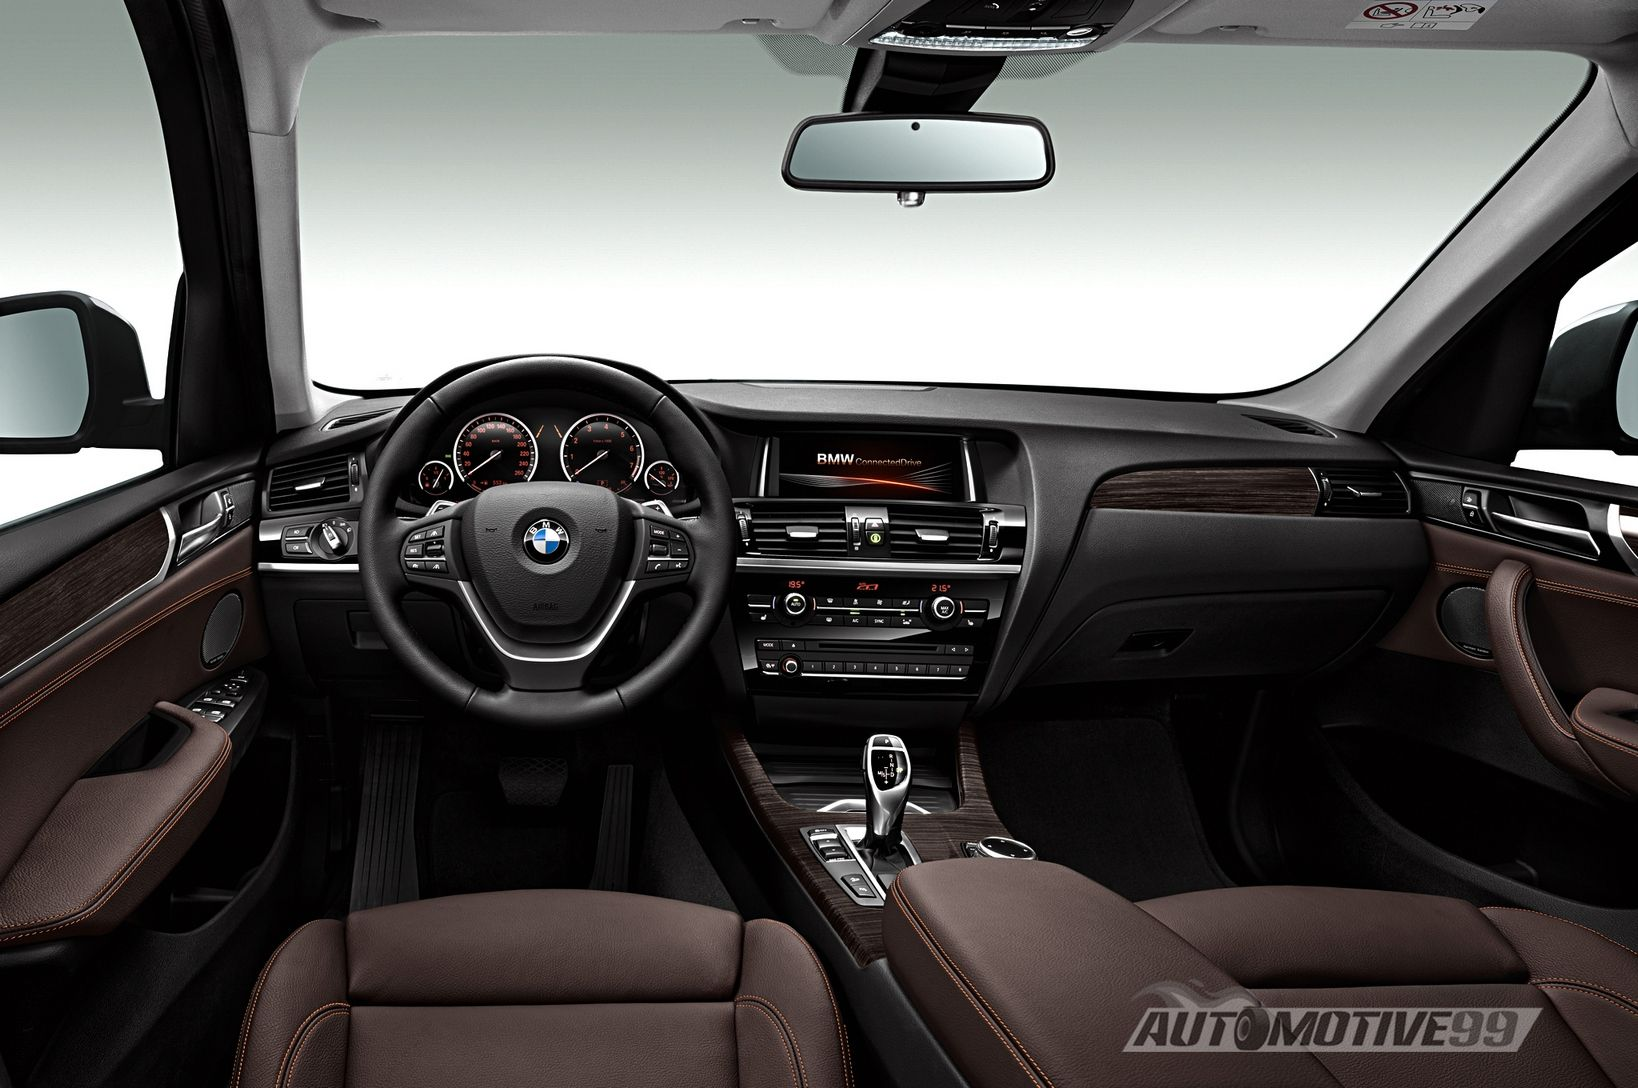 2017 BMW X3 M Review